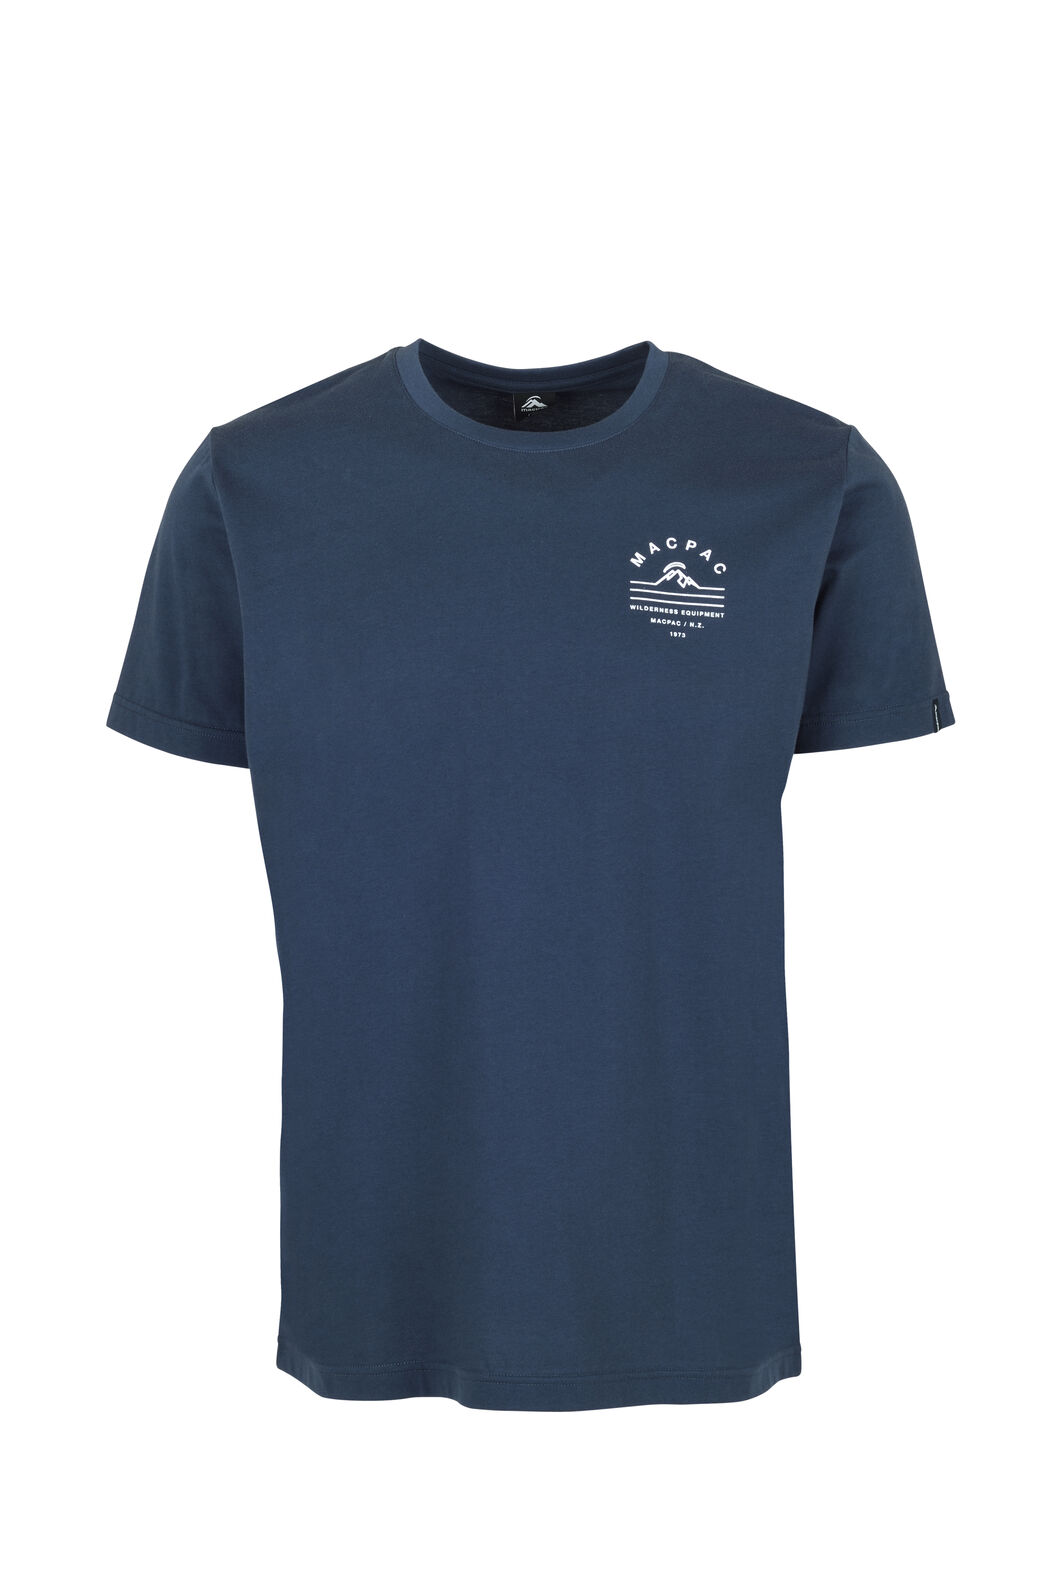 Macpac Alps Organic Tee — Men's, Mood Indigo, hi-res